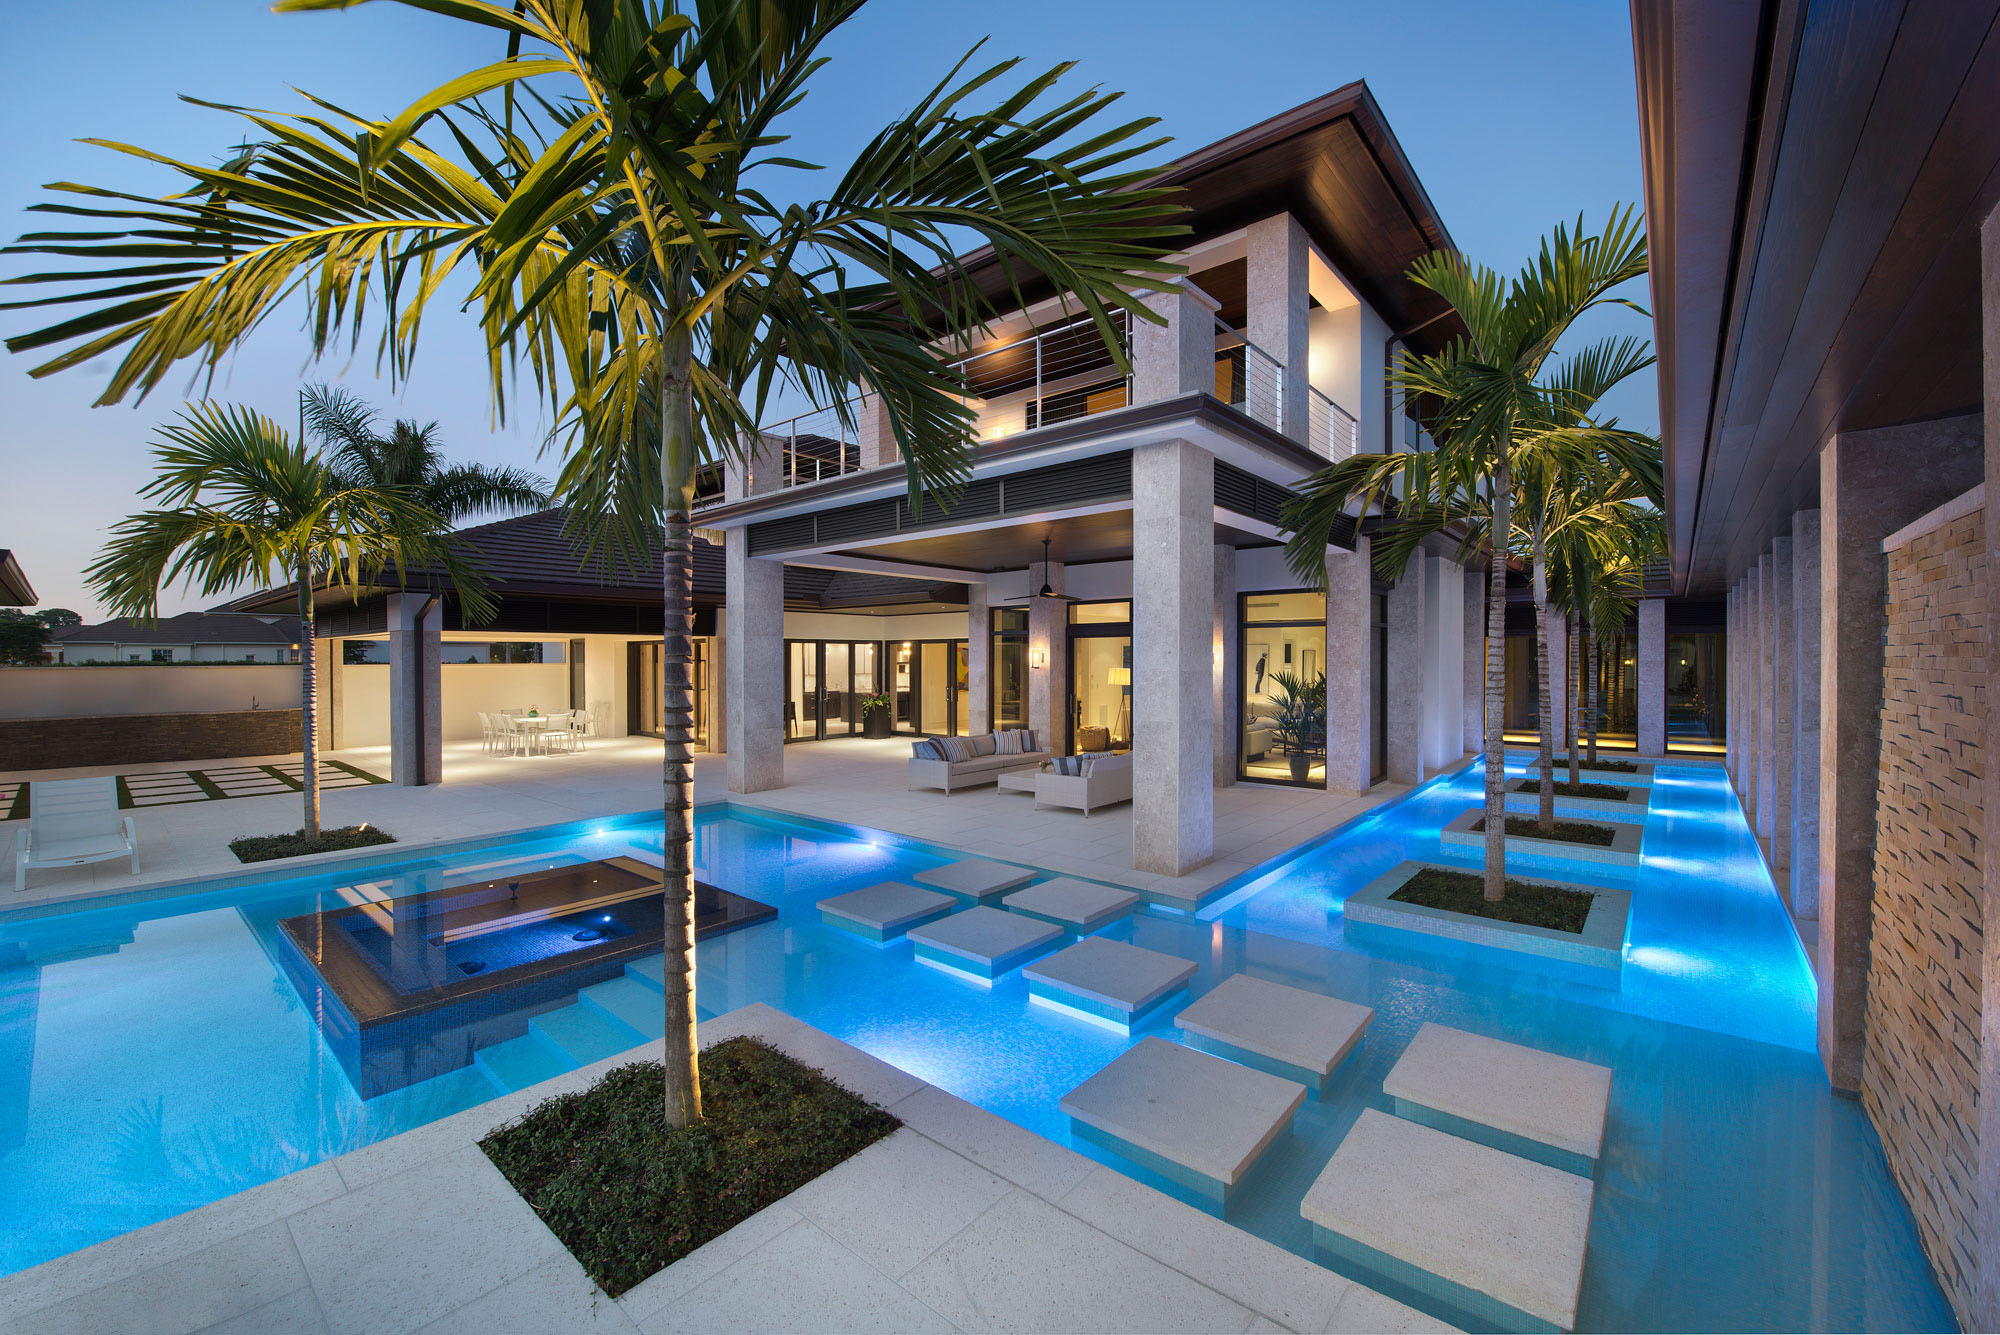 Custom dream home in florida with elegant swimming pool Dream designer homes